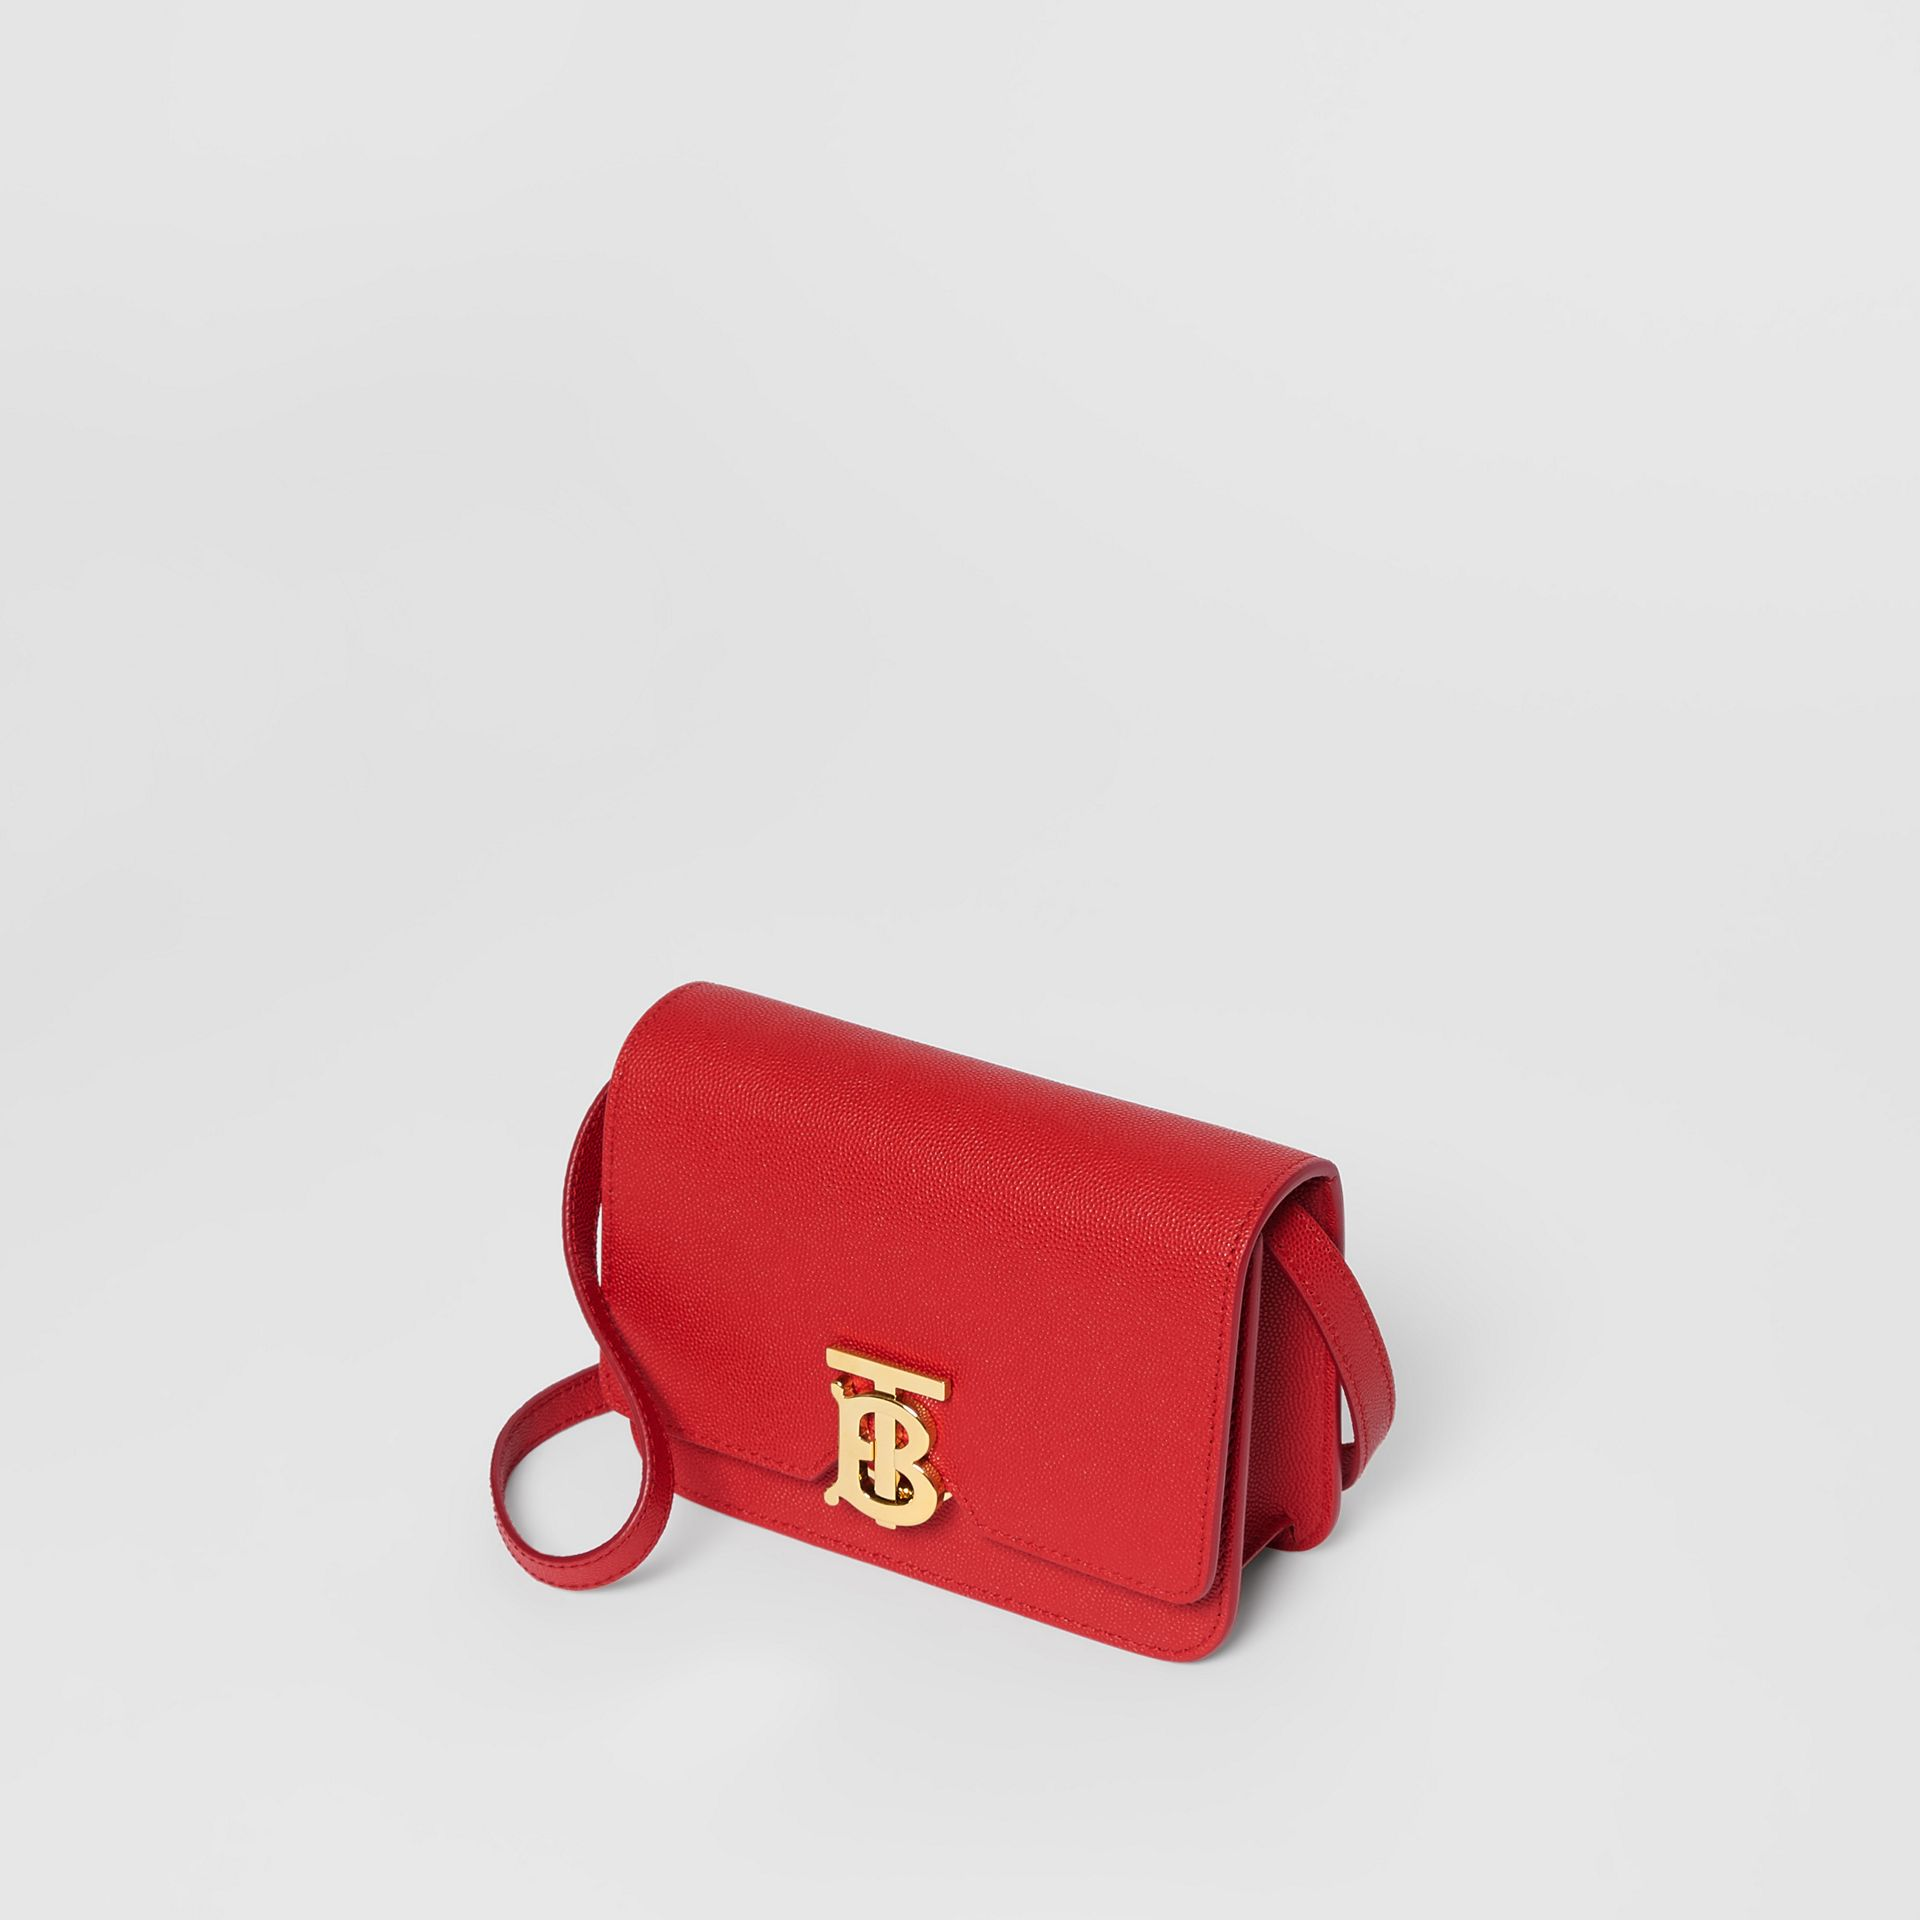 Mini Grainy Leather TB Bag in Bright Red - Women | Burberry Hong Kong S.A.R. - gallery image 3